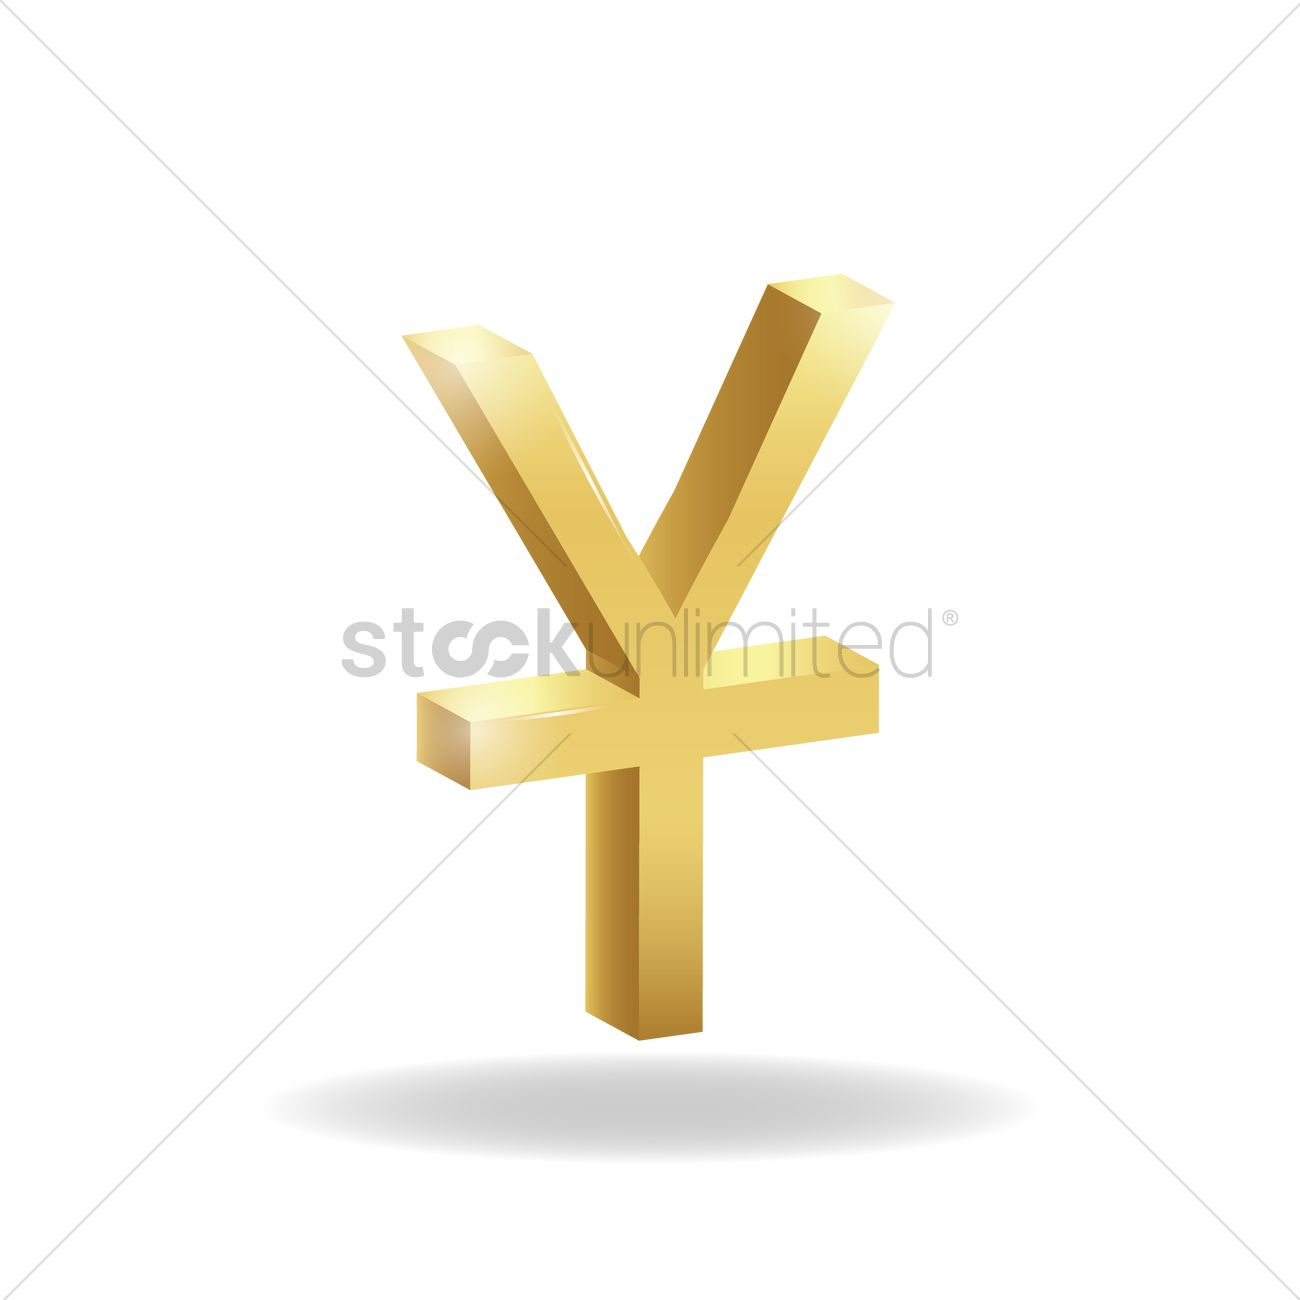 3d chinese yuan currency symbol vector image 1827766 3d chinese yuan currency symbol vector graphic biocorpaavc Image collections